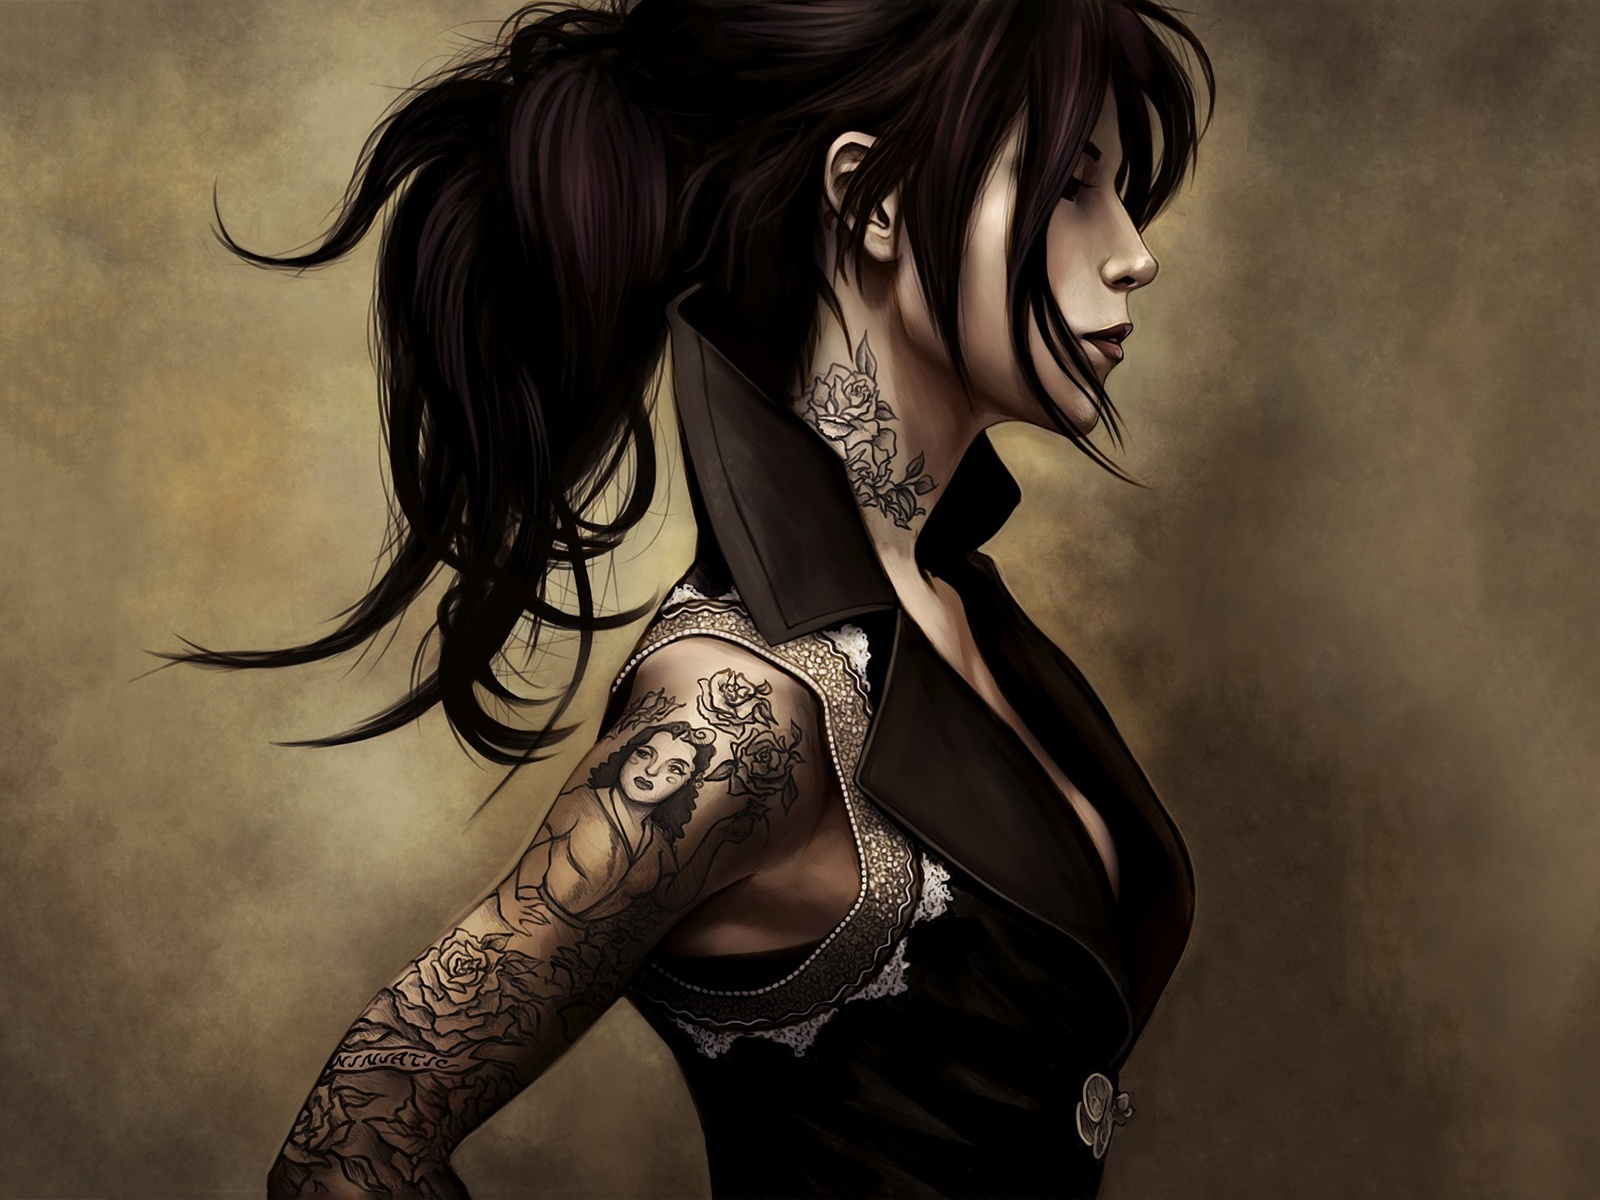 Tattoo girl art